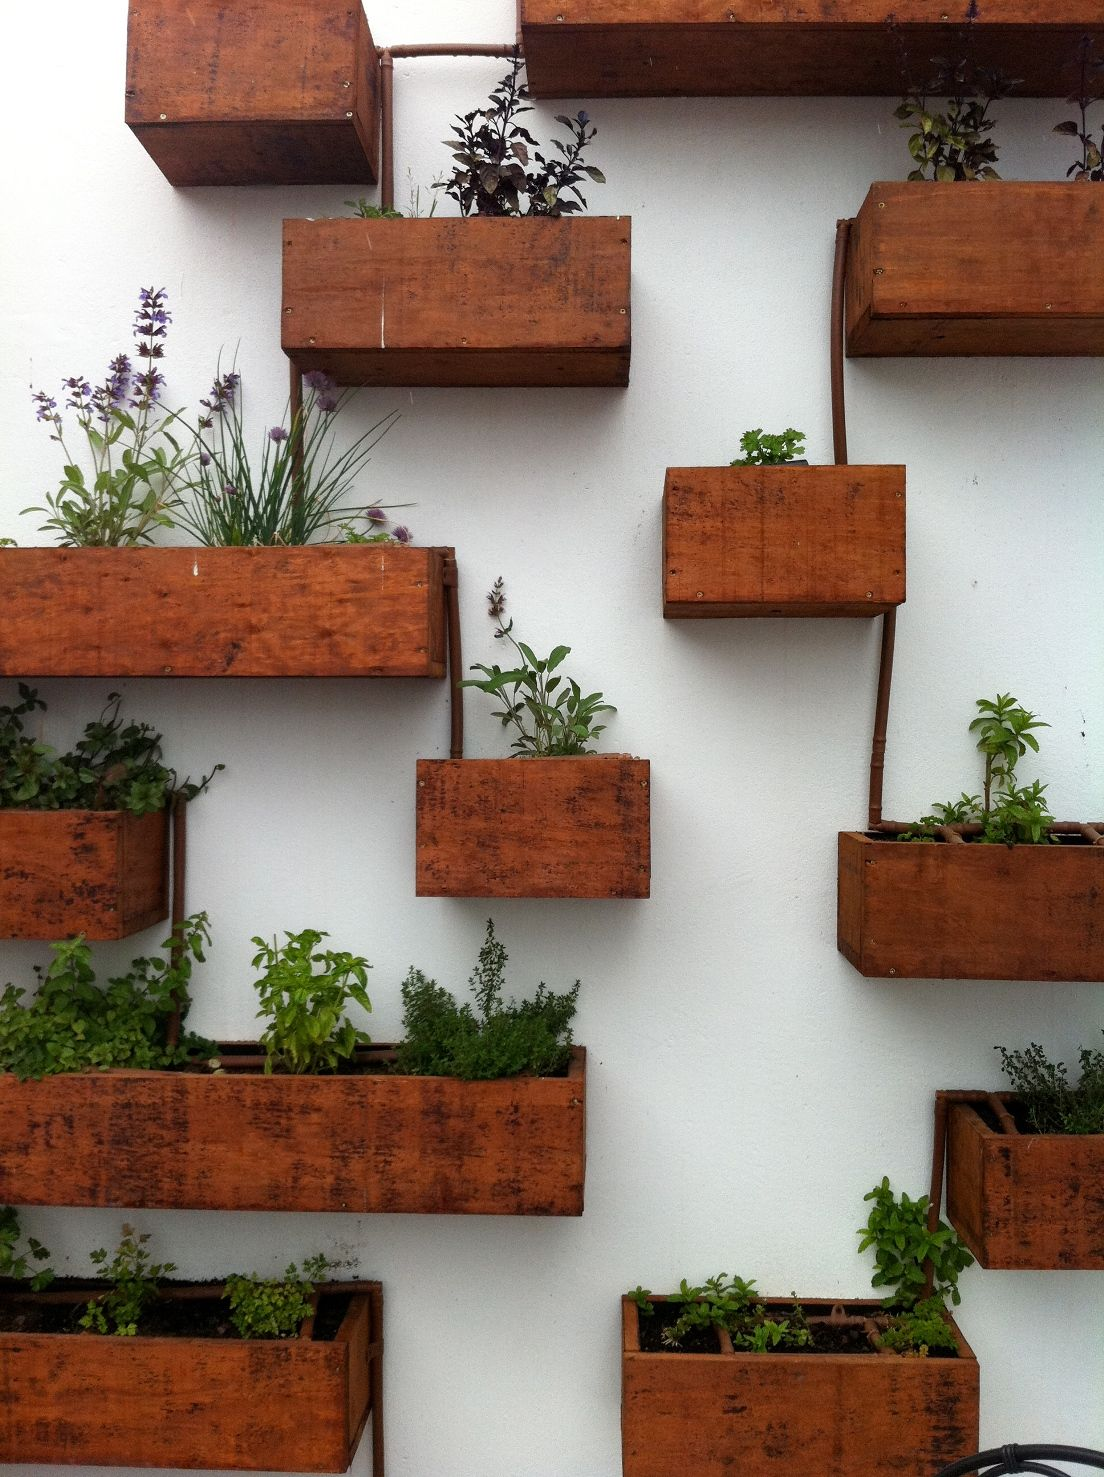 Cool Diy Indoor Vertical Garden In 2020 Garden Wall Planter Boxes Vertical Garden Wall Planter Garden Wall Planter